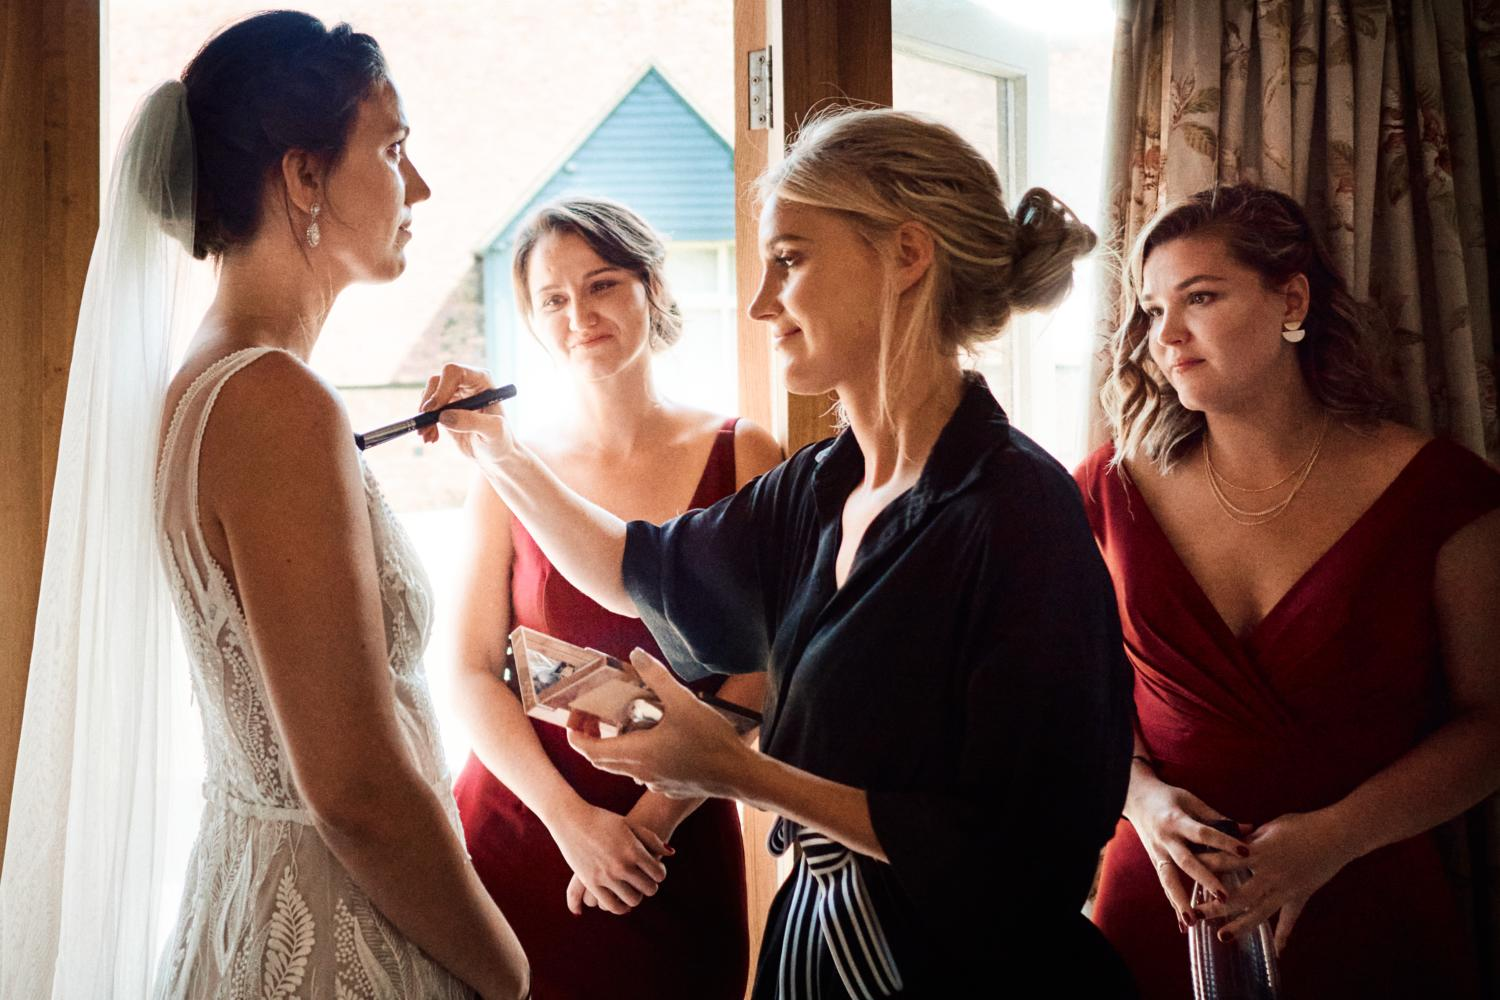 A sister looks affectionately at the bride